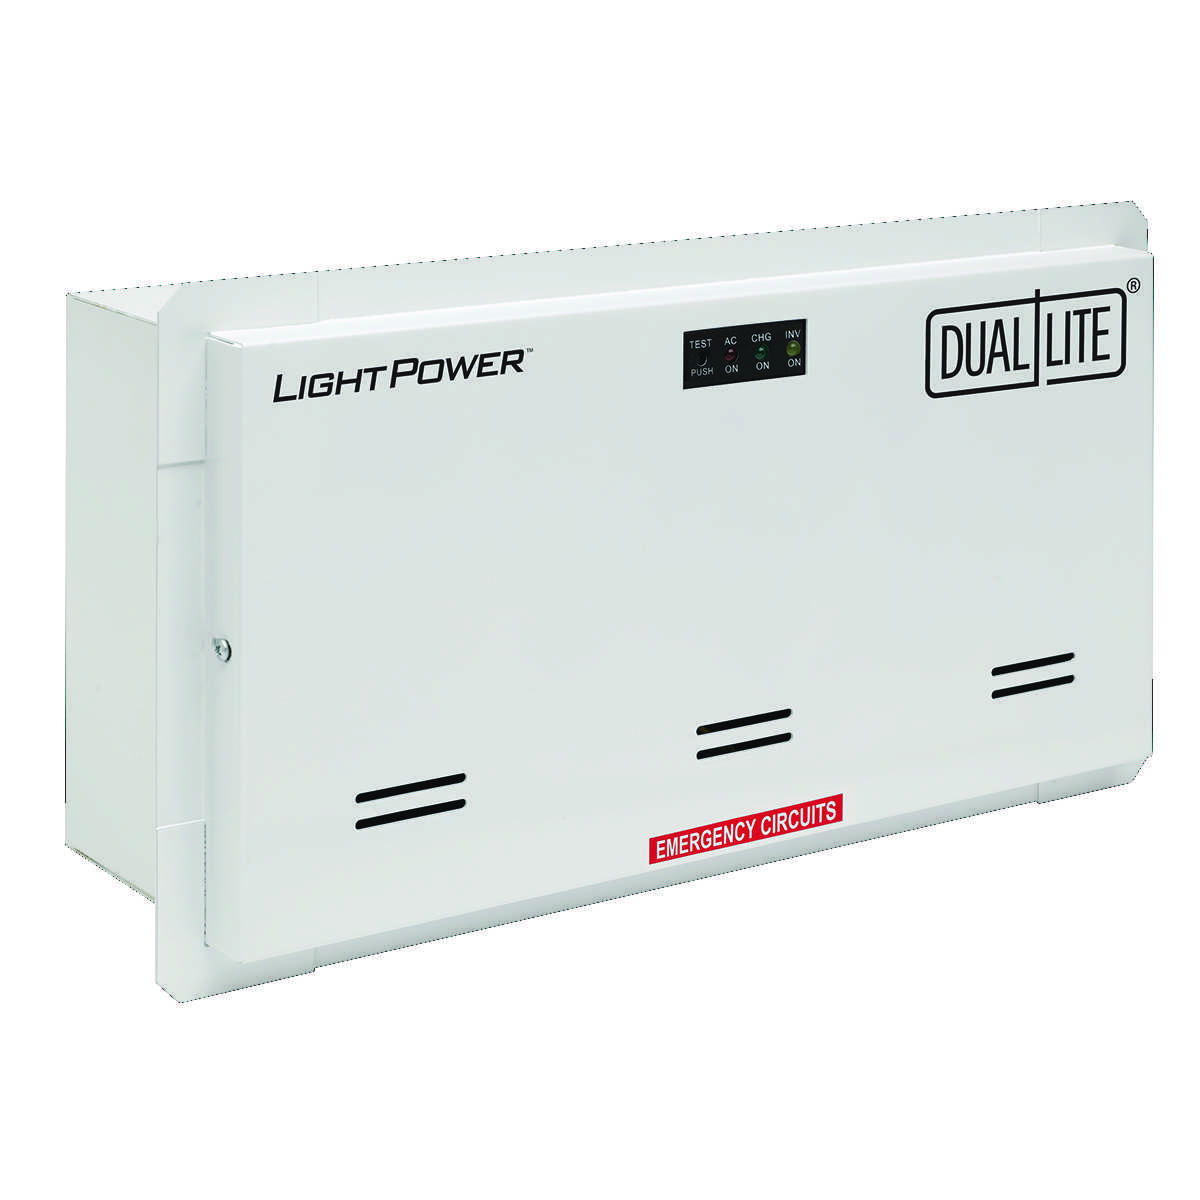 LPS32-S DUALLITE BATTER PACK FOR LED FIXTURE 32W SURFACE